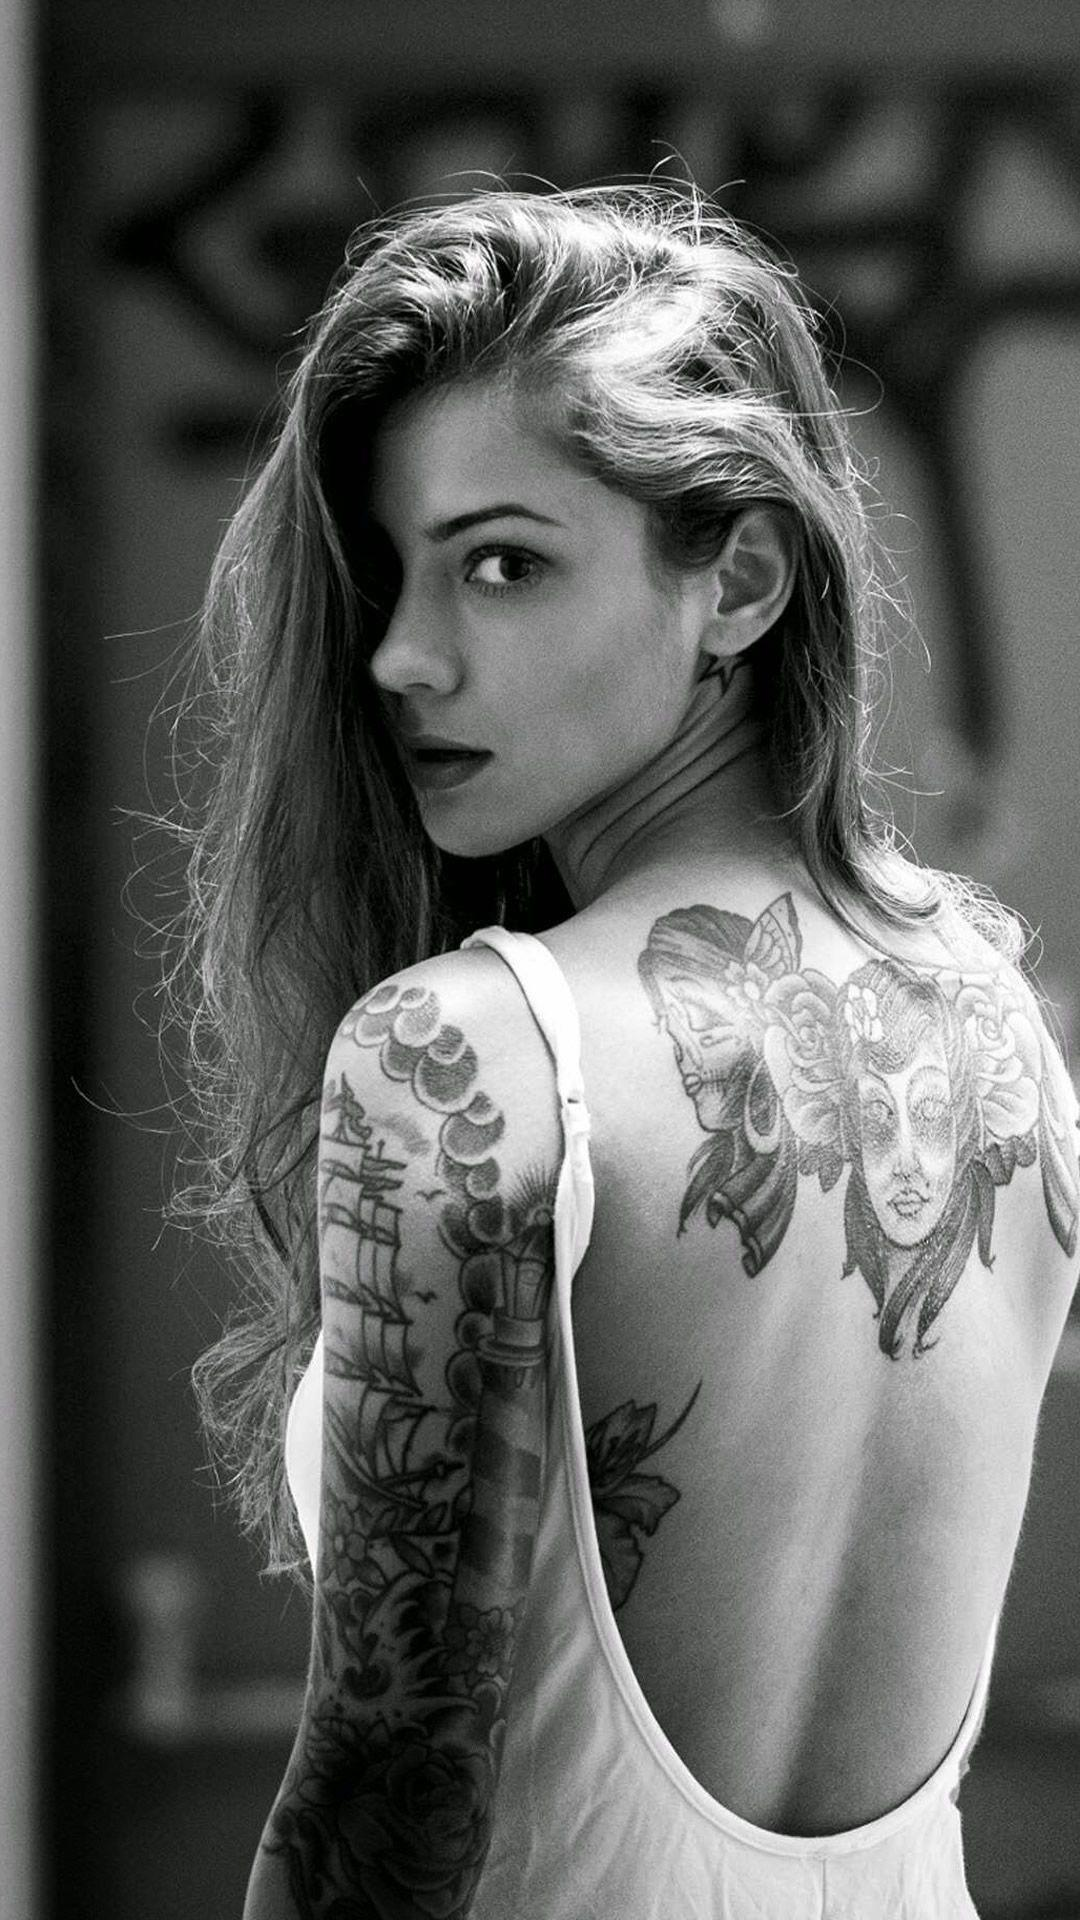 Iphone Tattoo Girl Wallpapers Wallpaper Cave